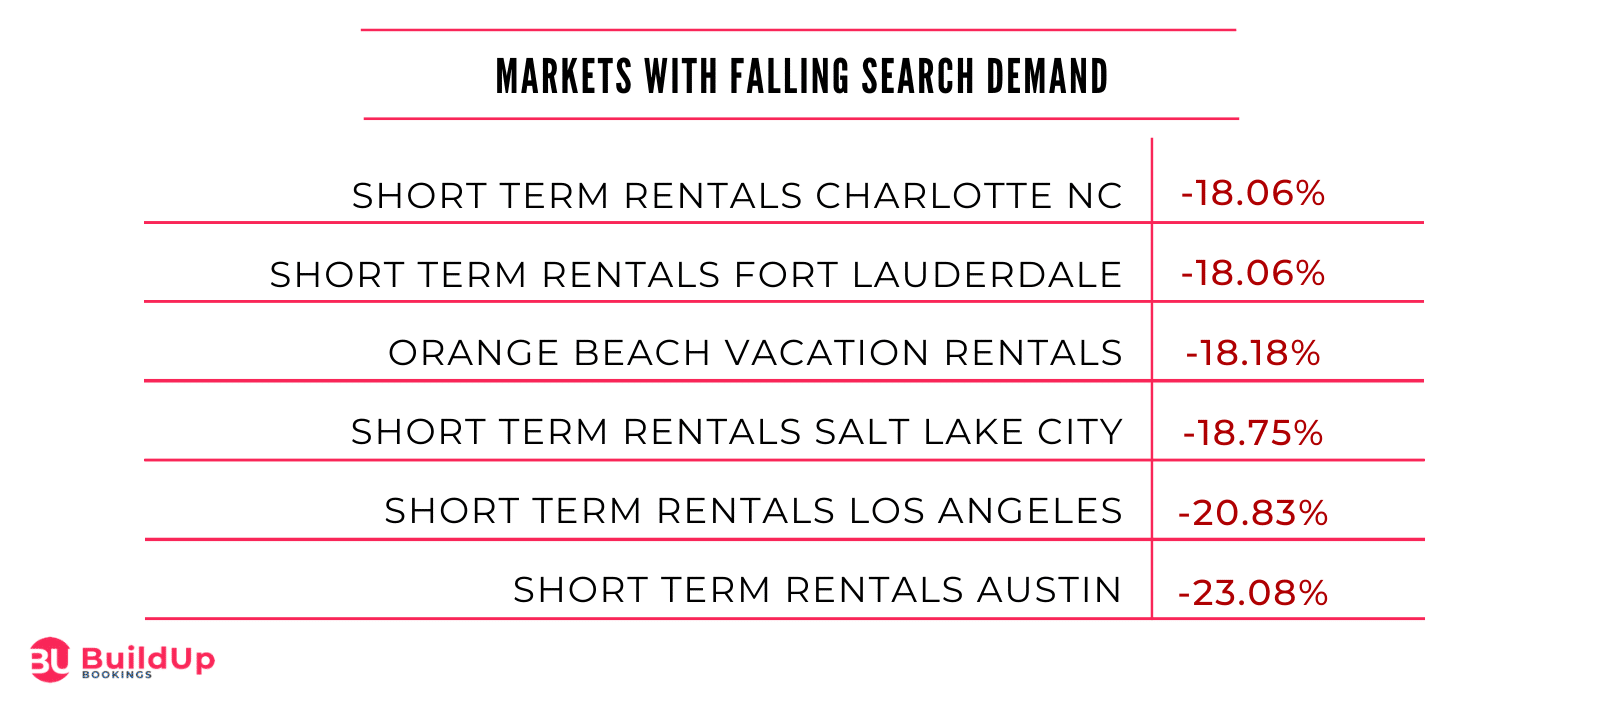 Markets With Falling Search Demand Final